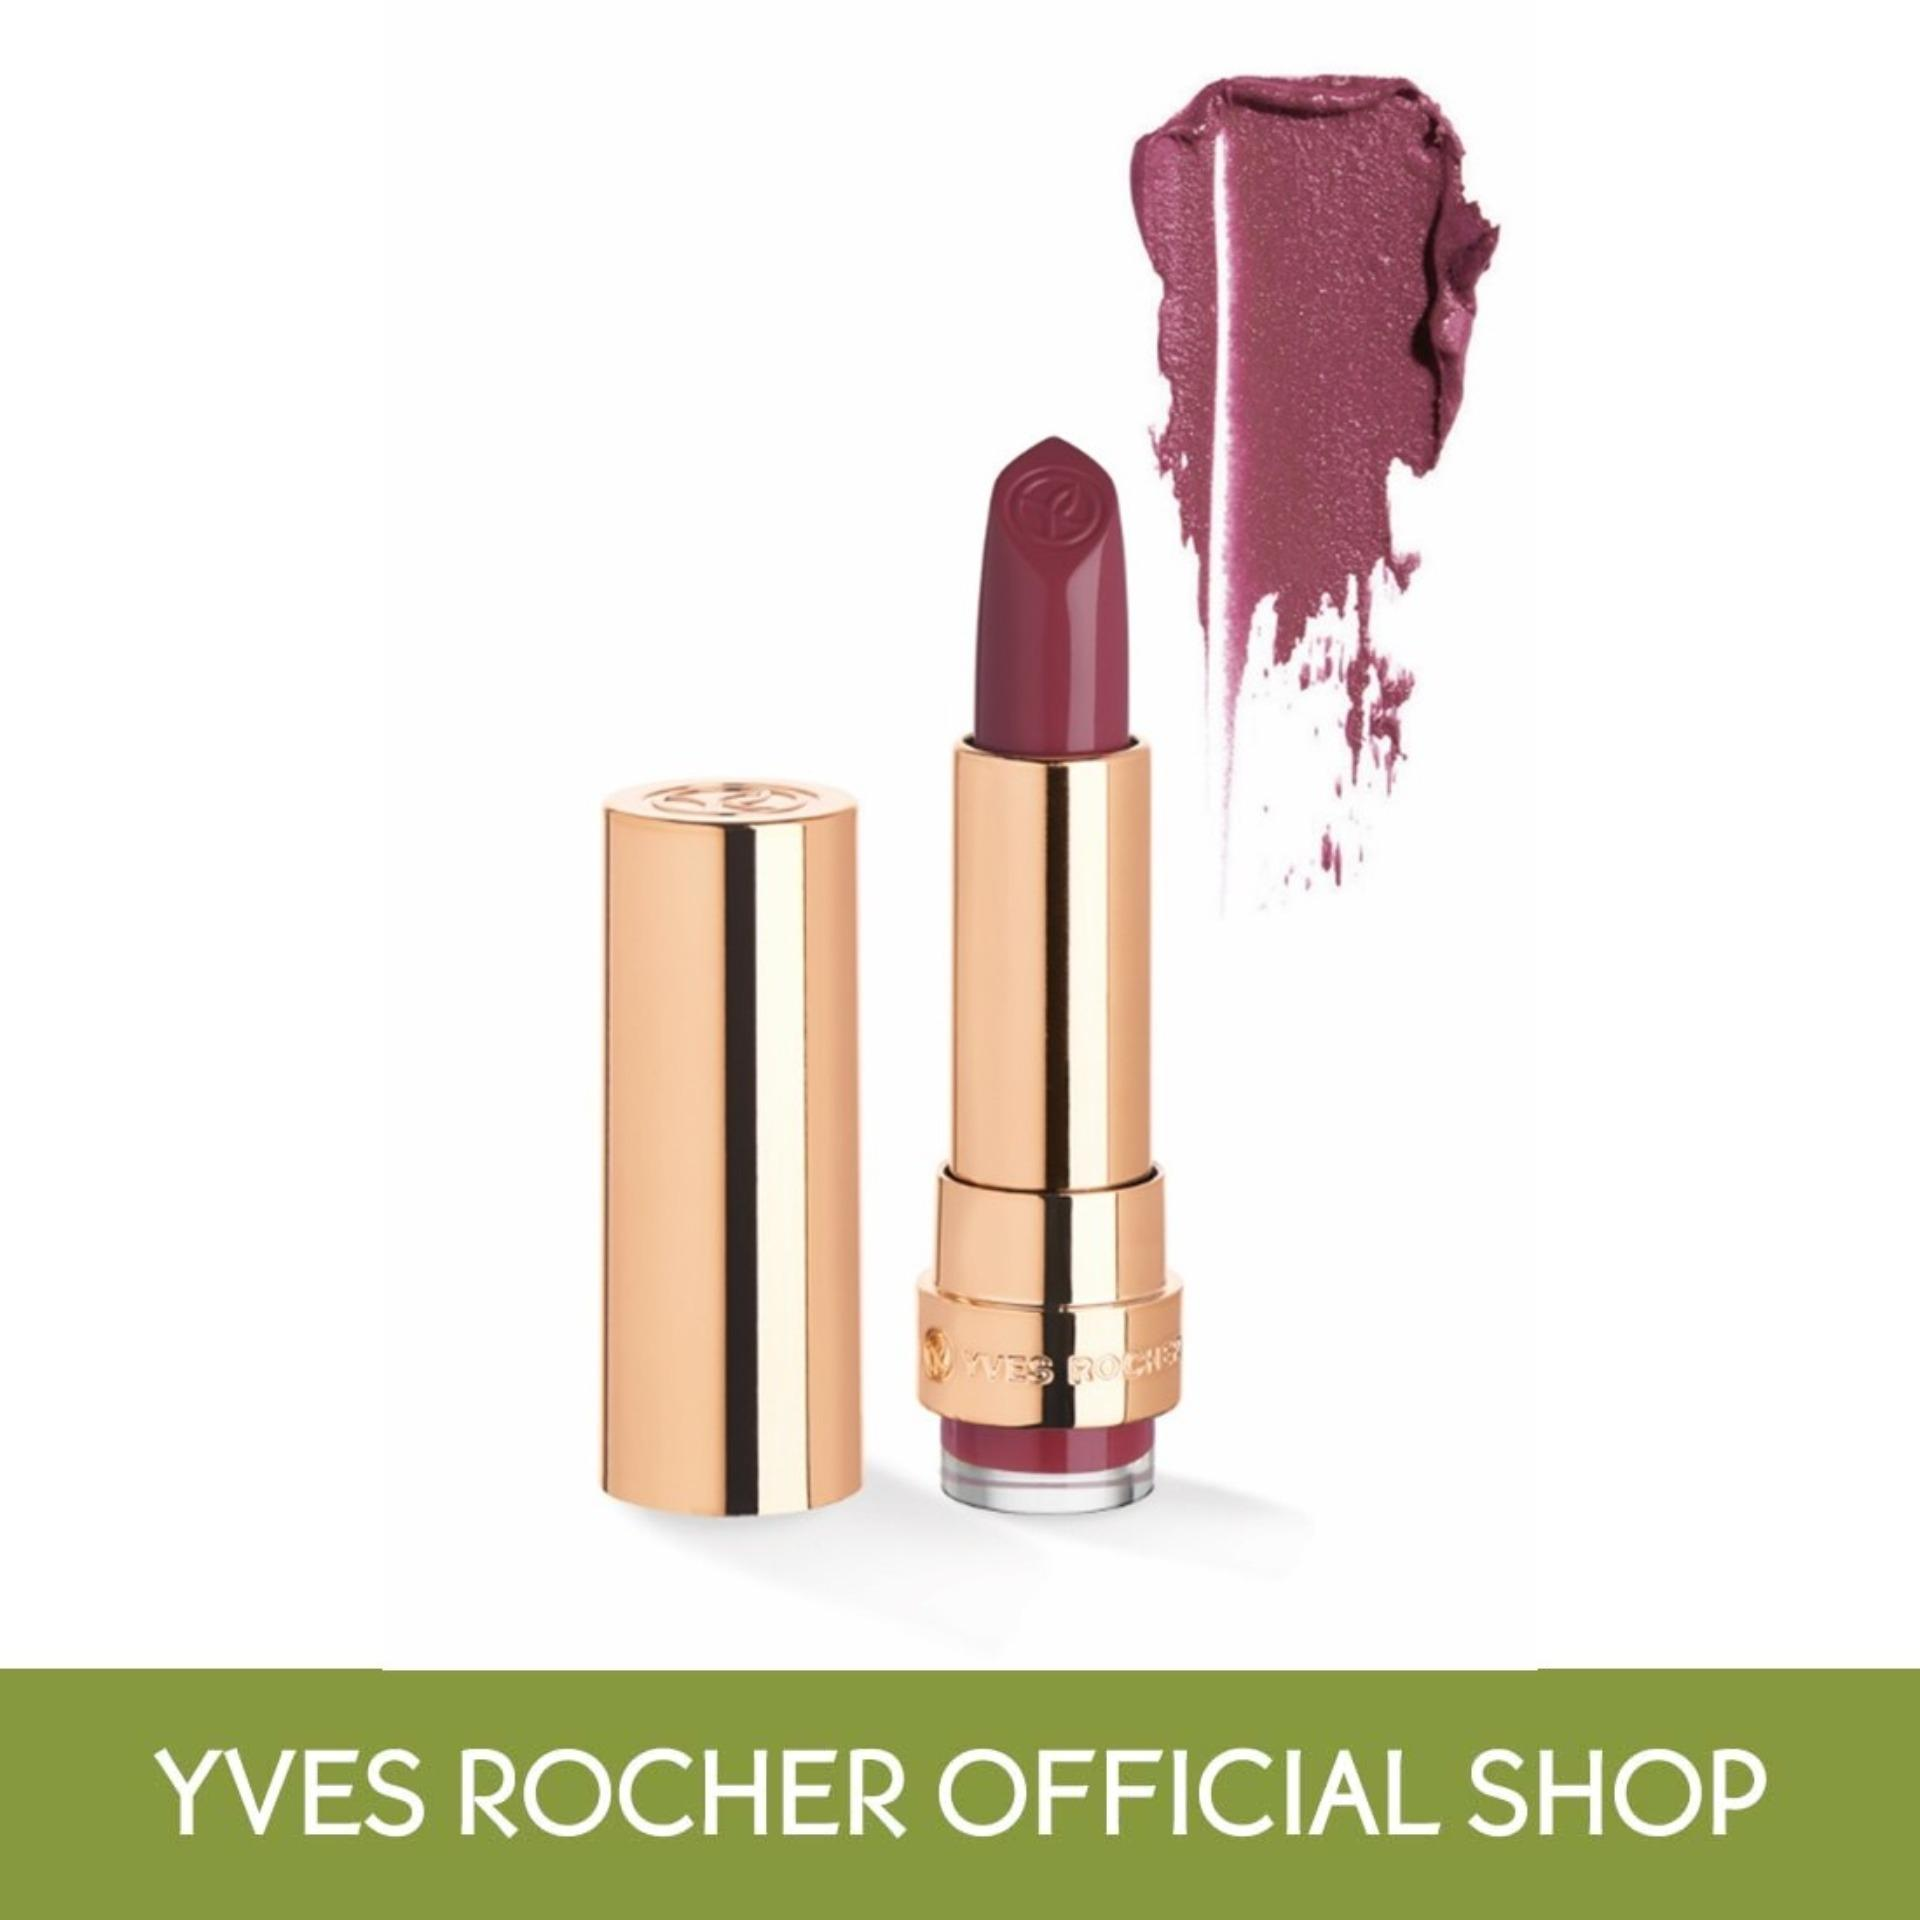 Yves Rocher Grand Rouge Lipstick 107 Satin (tf) By Yves Rocher Singapore (capitaland Merchant).